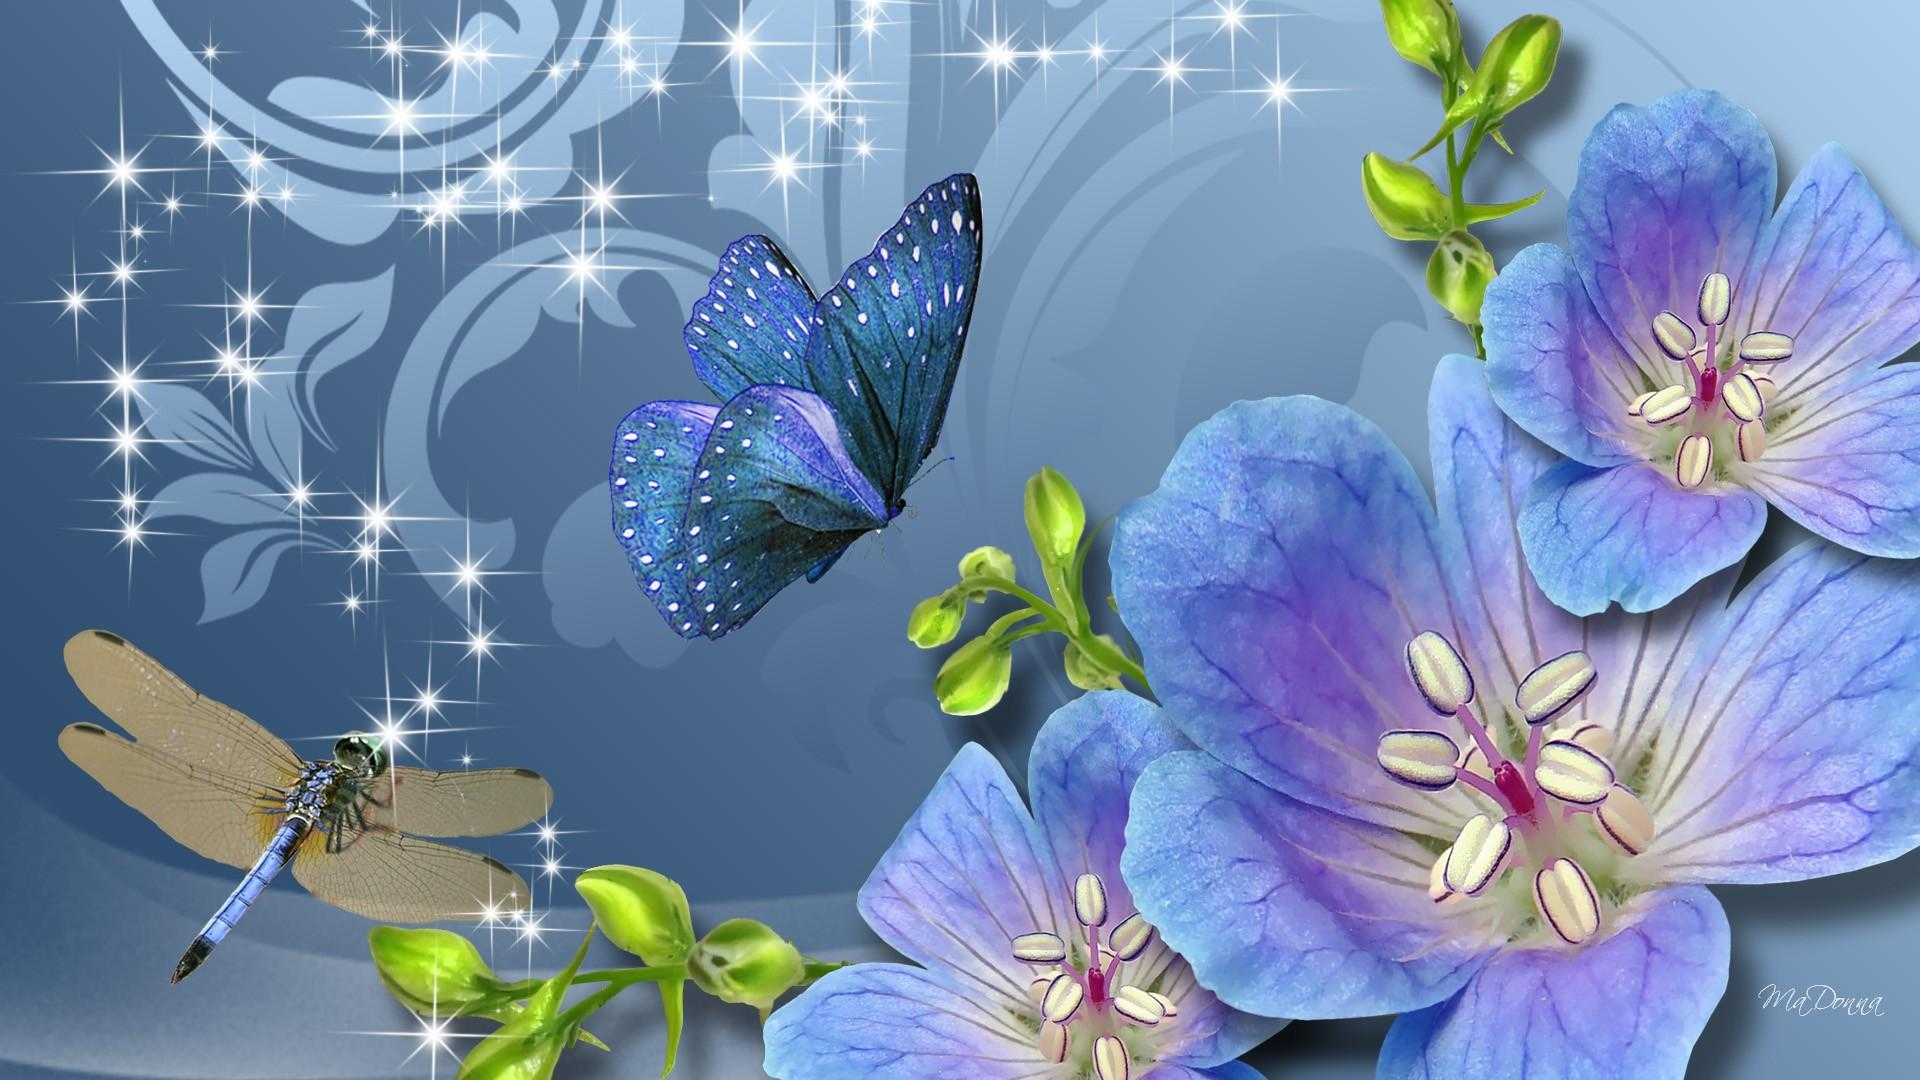 Blue Flowers butterfly dragonfly Blank Template - Imgflip